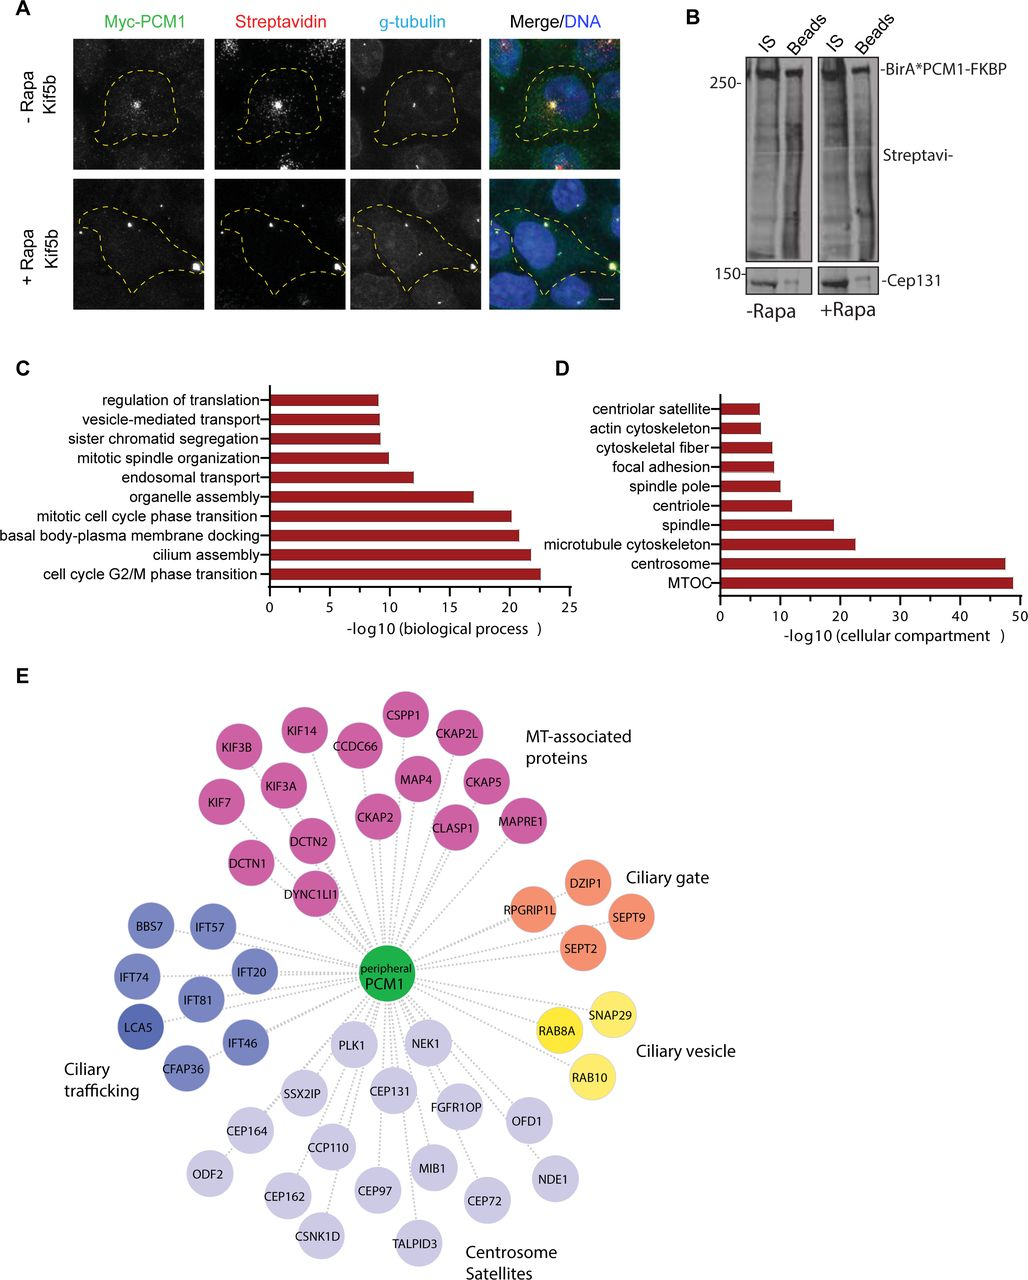 """The proximity interactome of PCM1 at the peripheral clusters is enriched for proteins implicated in ciliogenesis and mitosis The proximity PCM1 interactome of satellites were identified using the BioID approach. (A) HEK293T cells were transfected with Myc-BirA*-PCM1-FKBP and induced for peripheral targeting of satellites with rapamycin treatment for 1 h. Cells that were not treated with rapamycin were used as a control. After 18 h biotin incubation, cells were fixed and stained for Myc-BirA*-PCM1-FKBP expression with anti-myc, biotinylated proteins with streptavidin and centrosomes with g-tubulin. DNA was stained with DAPI. Scale bar = 10 μm, cell edges are outlined. (B) Biotinylated proteins from cell lysates from cells expressing Myc-BirA*-PCM1-FKBP (-rapamycin or +rapamycin) were pulled down with streptavidin chromatography and samples were analyzed by SDS-PAGE and western blotting with streptavidin to detect biotinylated proteins and with anti-Cep131 (positive control). IS: initial sample used for streptavidin pulldowns, Beads: Eluted proteins. (C, D) GO-enrichment analysis of the proximity interactors of PCM1 after rapamycin treatment based on their (C) biological processes and (D) cellular compartment. The X-axis represents the log transformed p-value (Fishers exact test) of GO terms. (E) The cilium-associated proteins in the interactome of peripheral satellites were determined based on GO categories and previous work and different ciliogenesis functional modules plotted in the """"peripheral PCM1 interaction network using Cytoscape."""